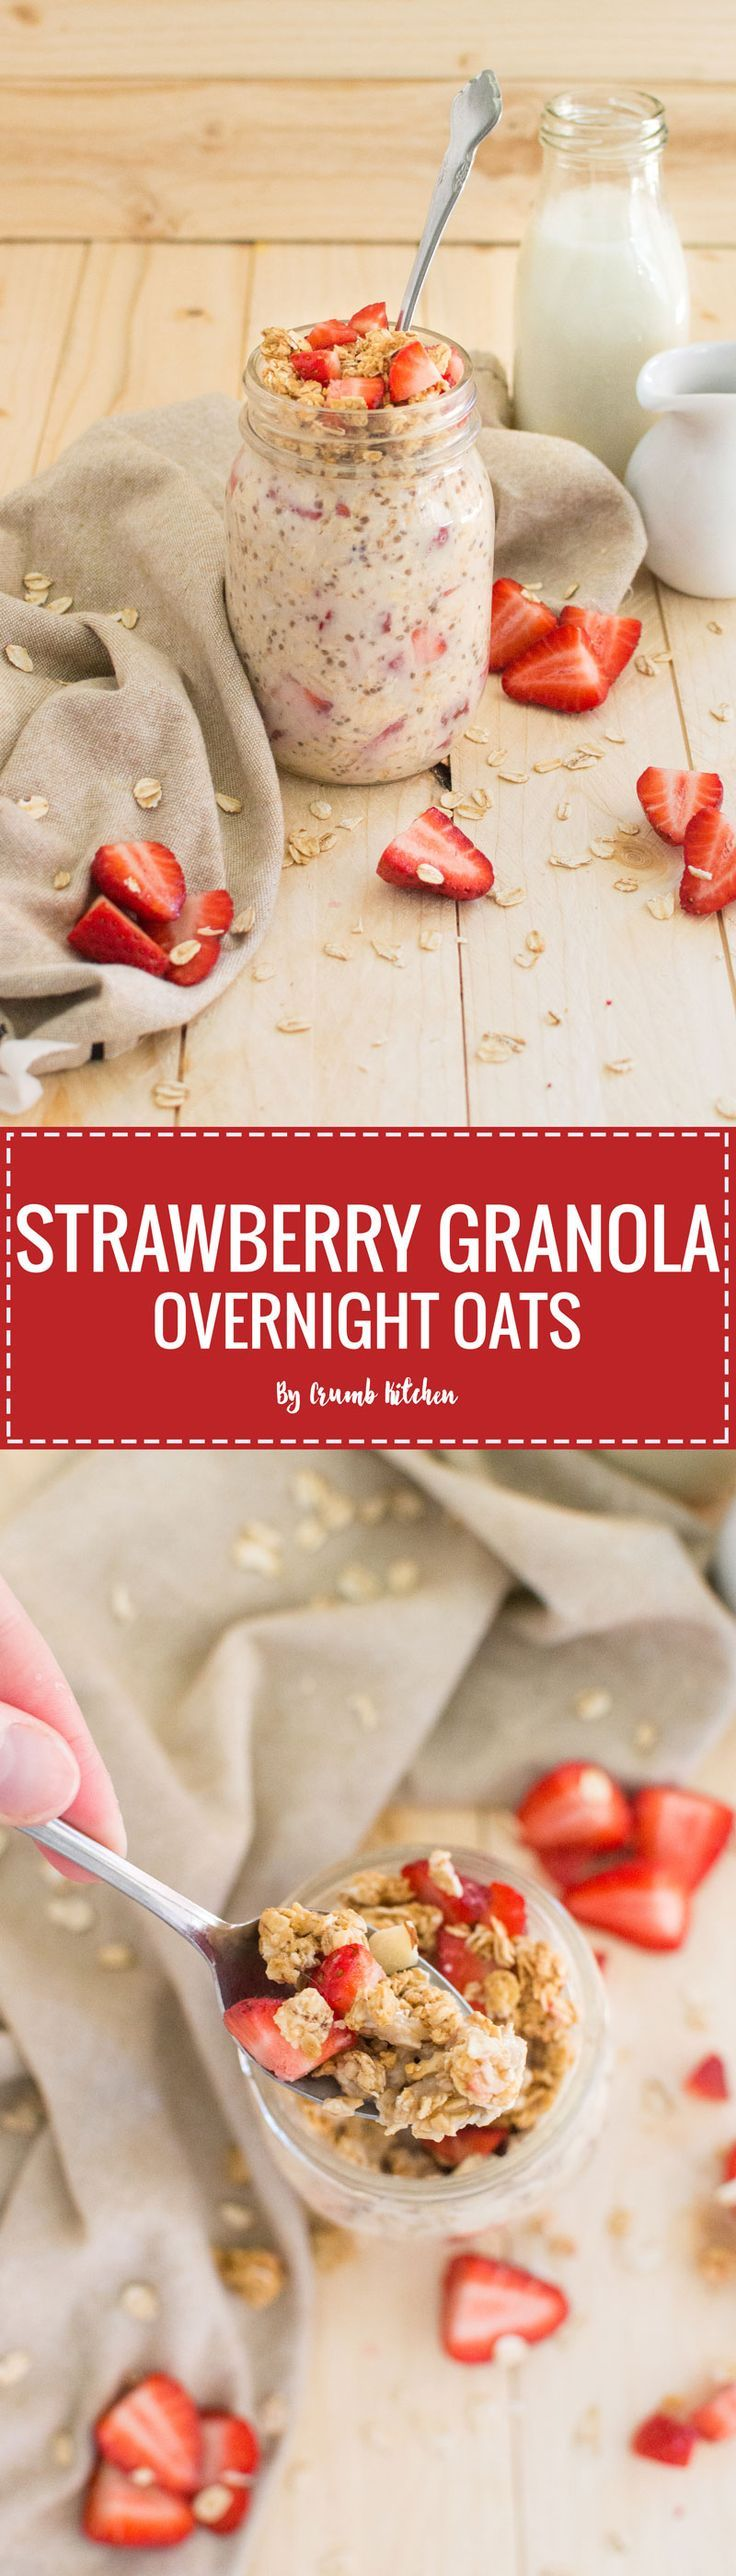 These simple Strawberry Granola Overnight Oats are chock full of large flake oats, chia seeds, almond milk and fresh chopped strawberries. | http://crumbkitchen.com